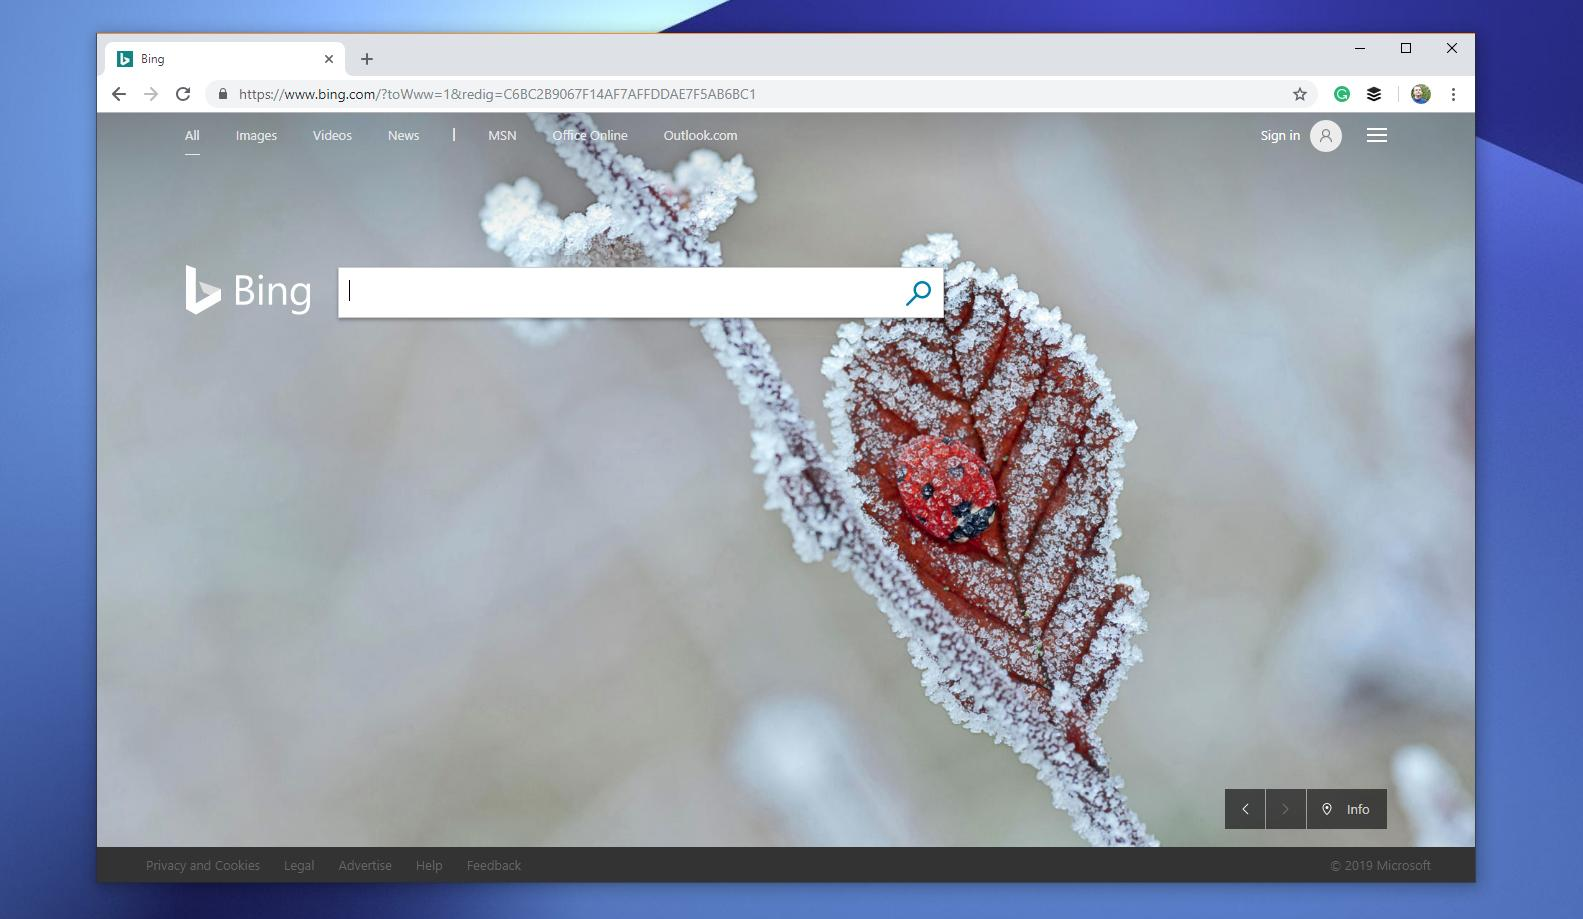 Google Chrome On Windows 10 To Soon Get Its Own Dark Mode